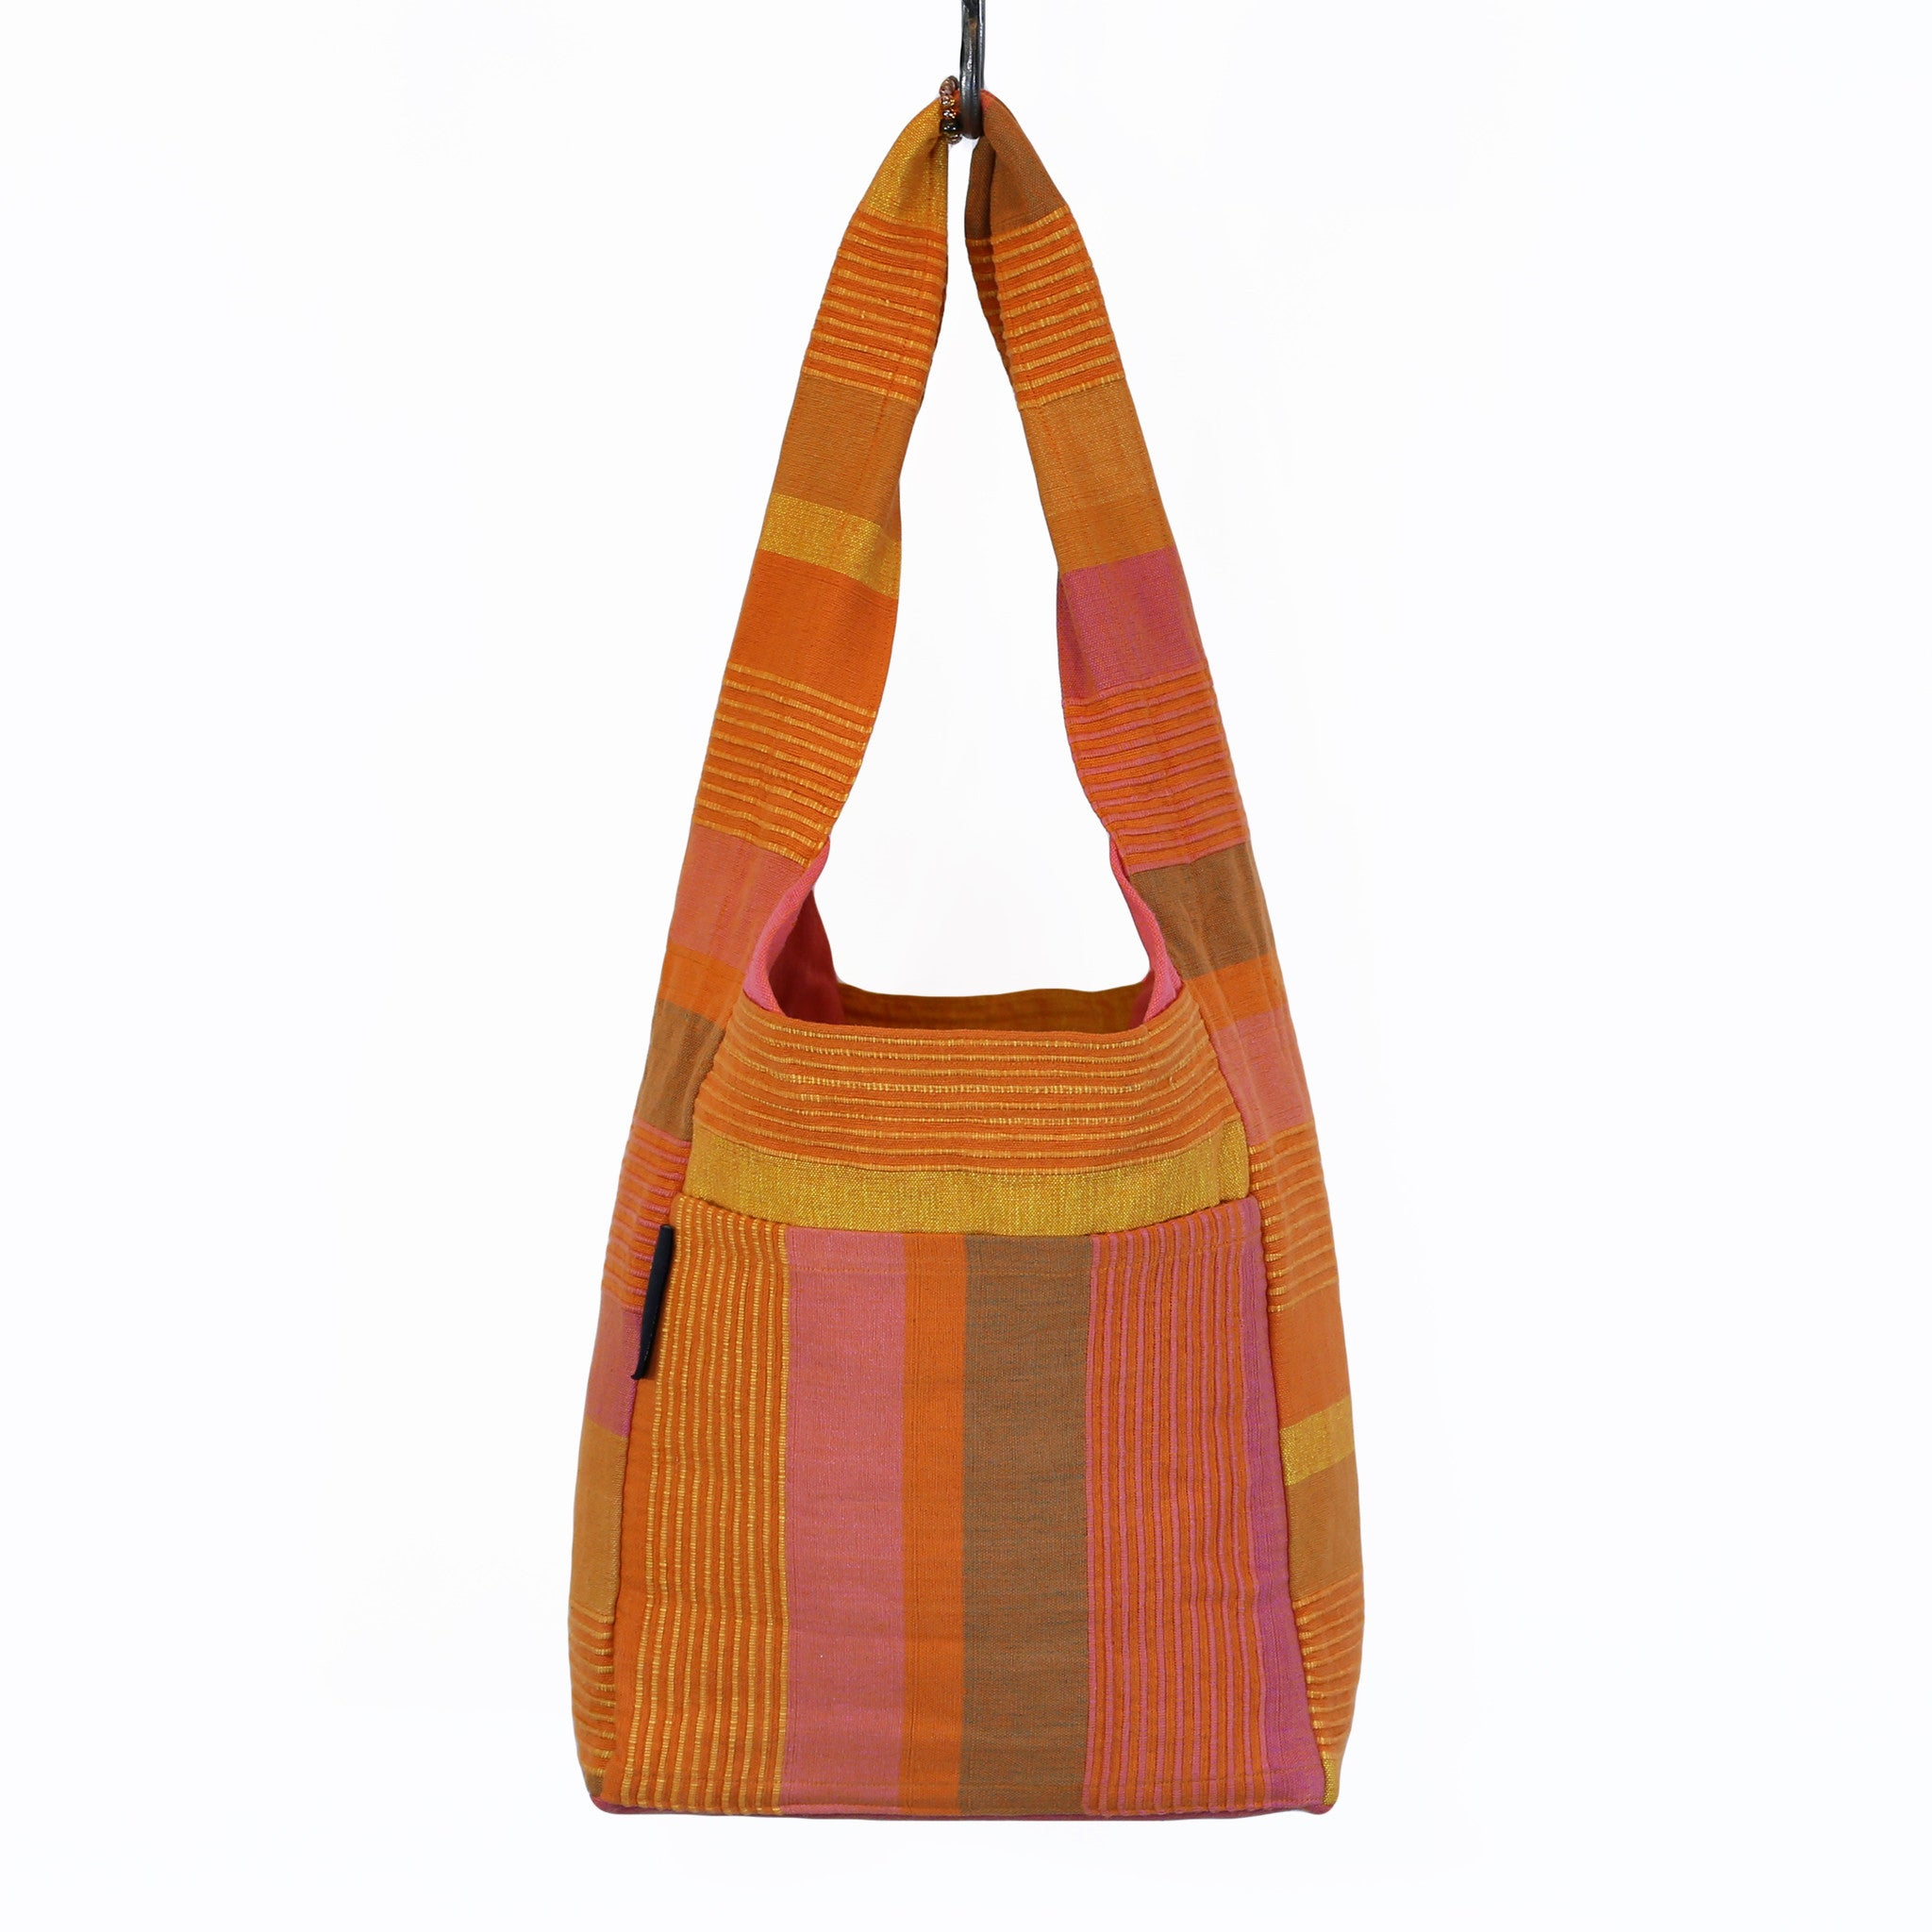 The Versatile Shoulder Bag – Sunset fabric shown (large size)